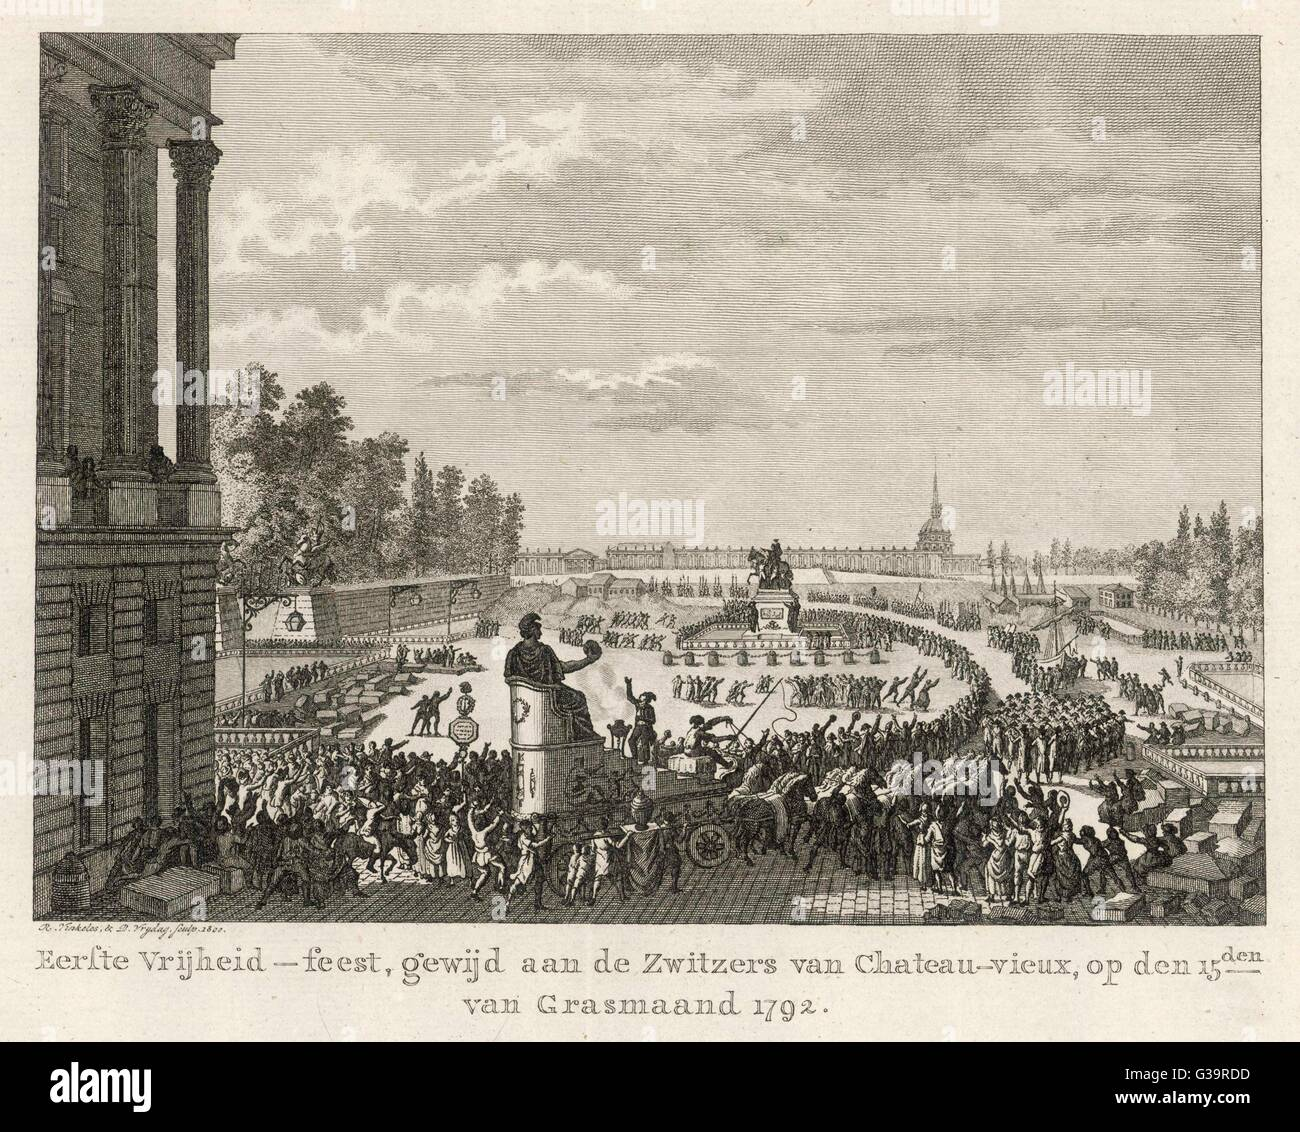 The Festival of Liberty.          Date: 15 April 1792 - Stock Image